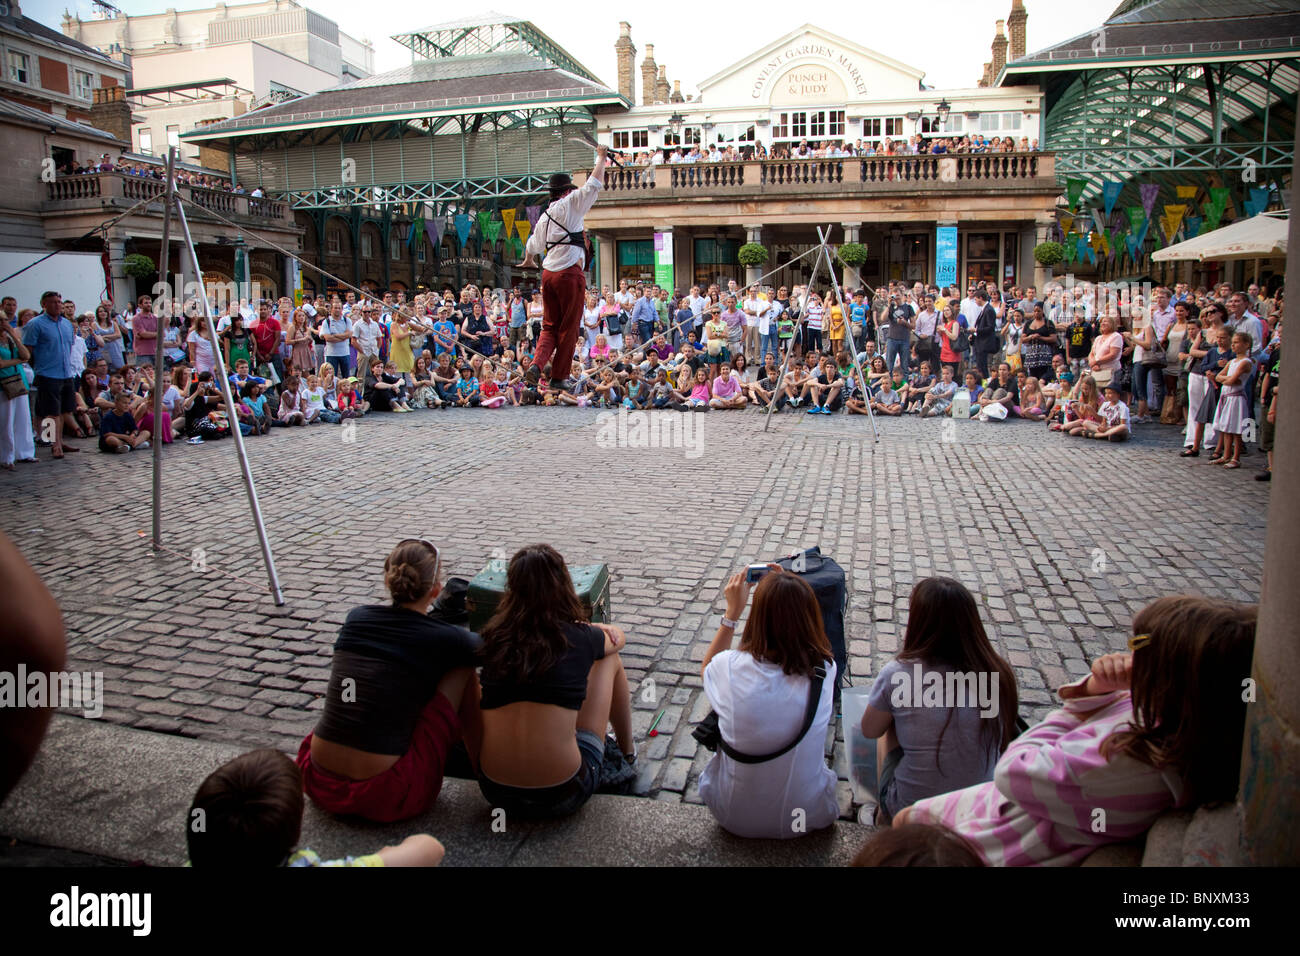 Crowds watching the street performers at Covent Garden, London, England - Stock Image